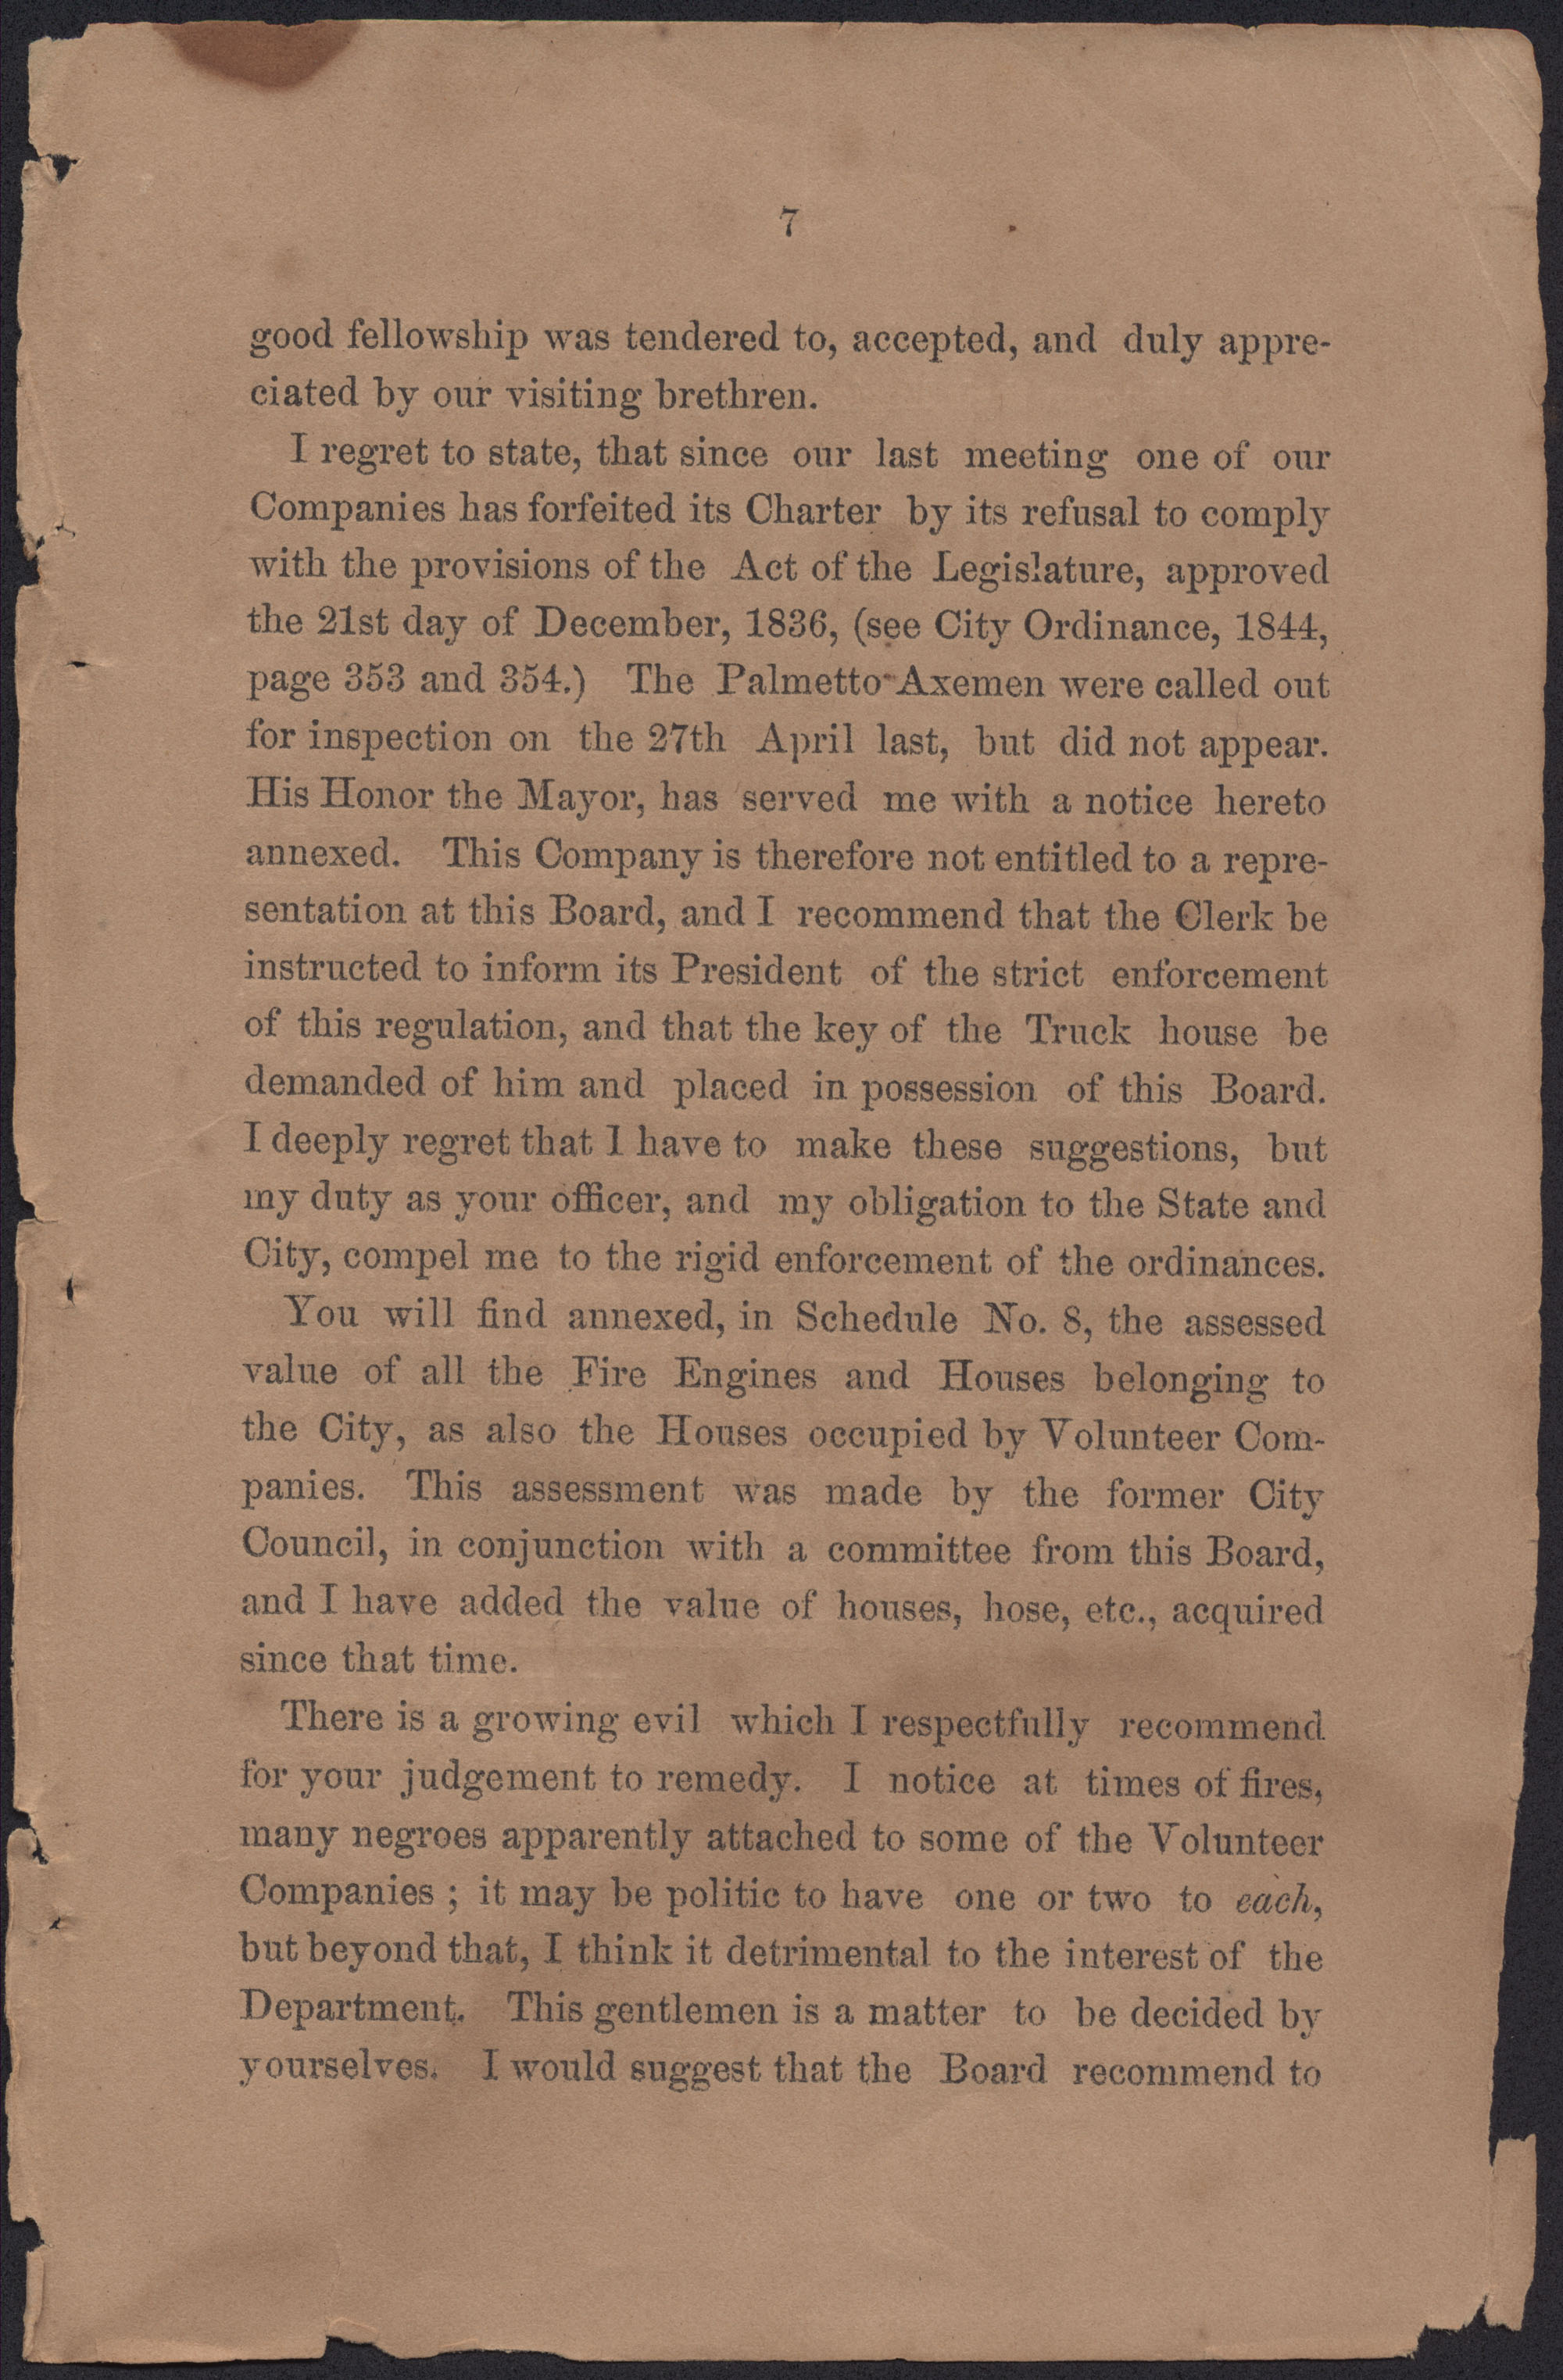 Annual Report of the Chief of the Fire Department of the City of Charleston, page 5